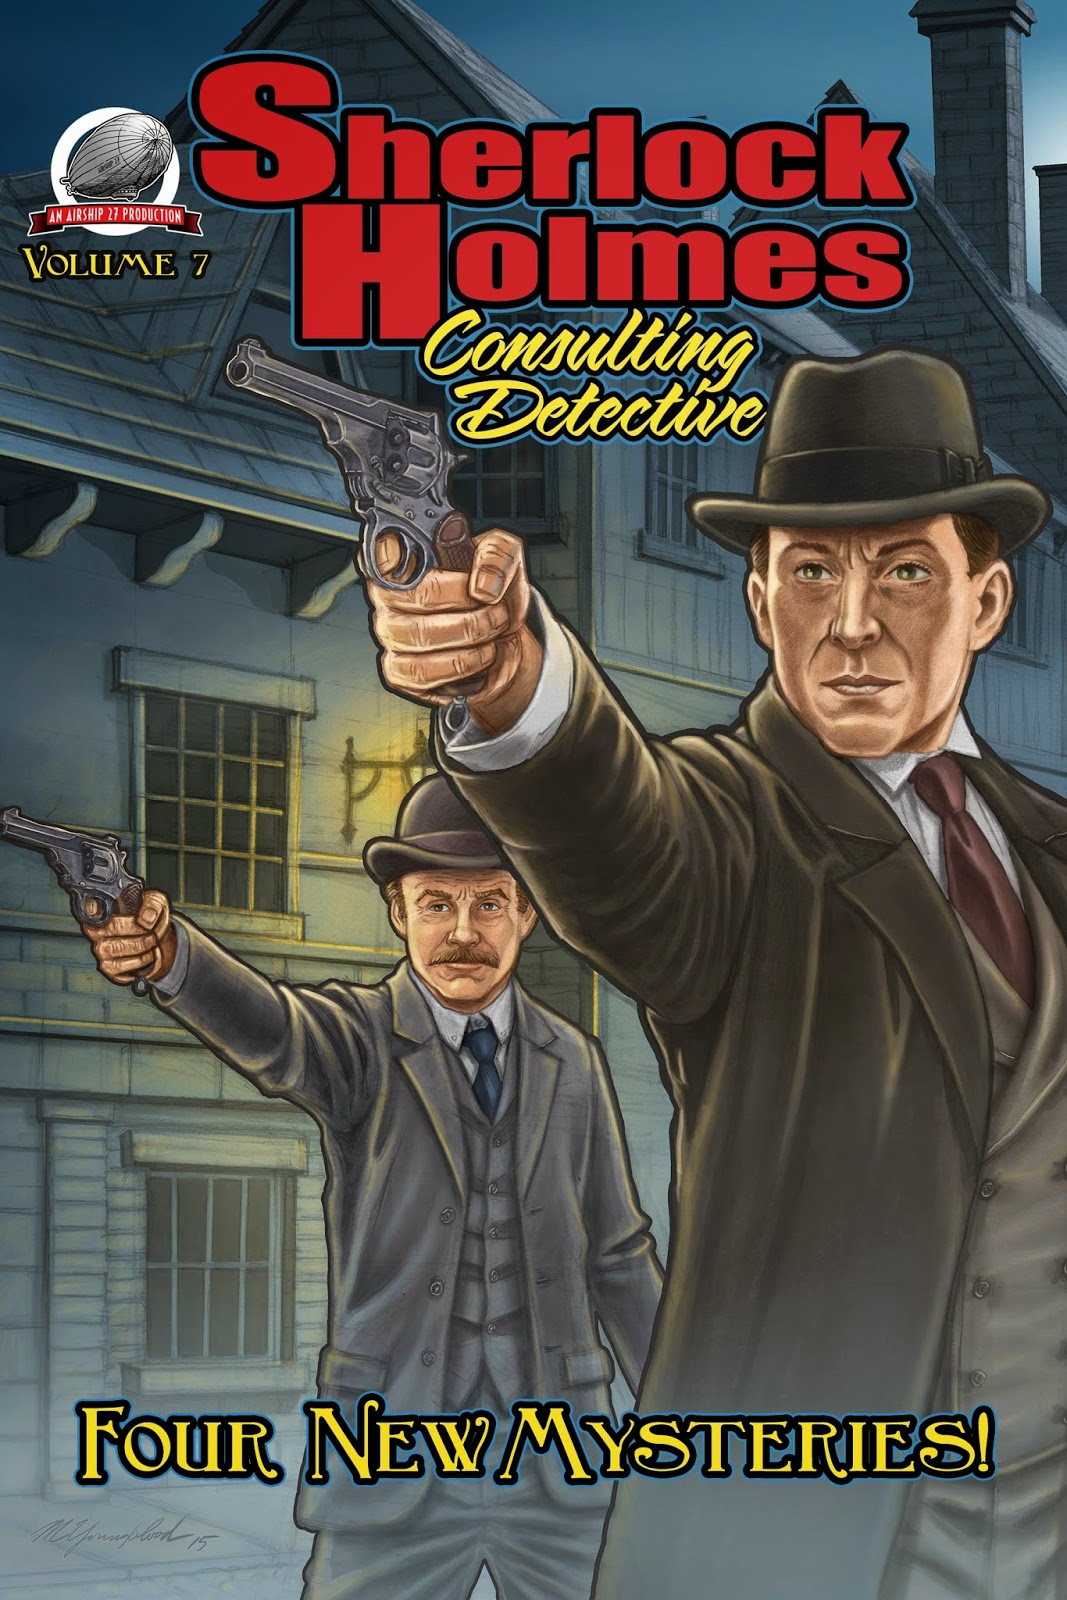 THE PULP FACTORY: SHERLCOCK HOLMES - CONSULTING DETECTIVE